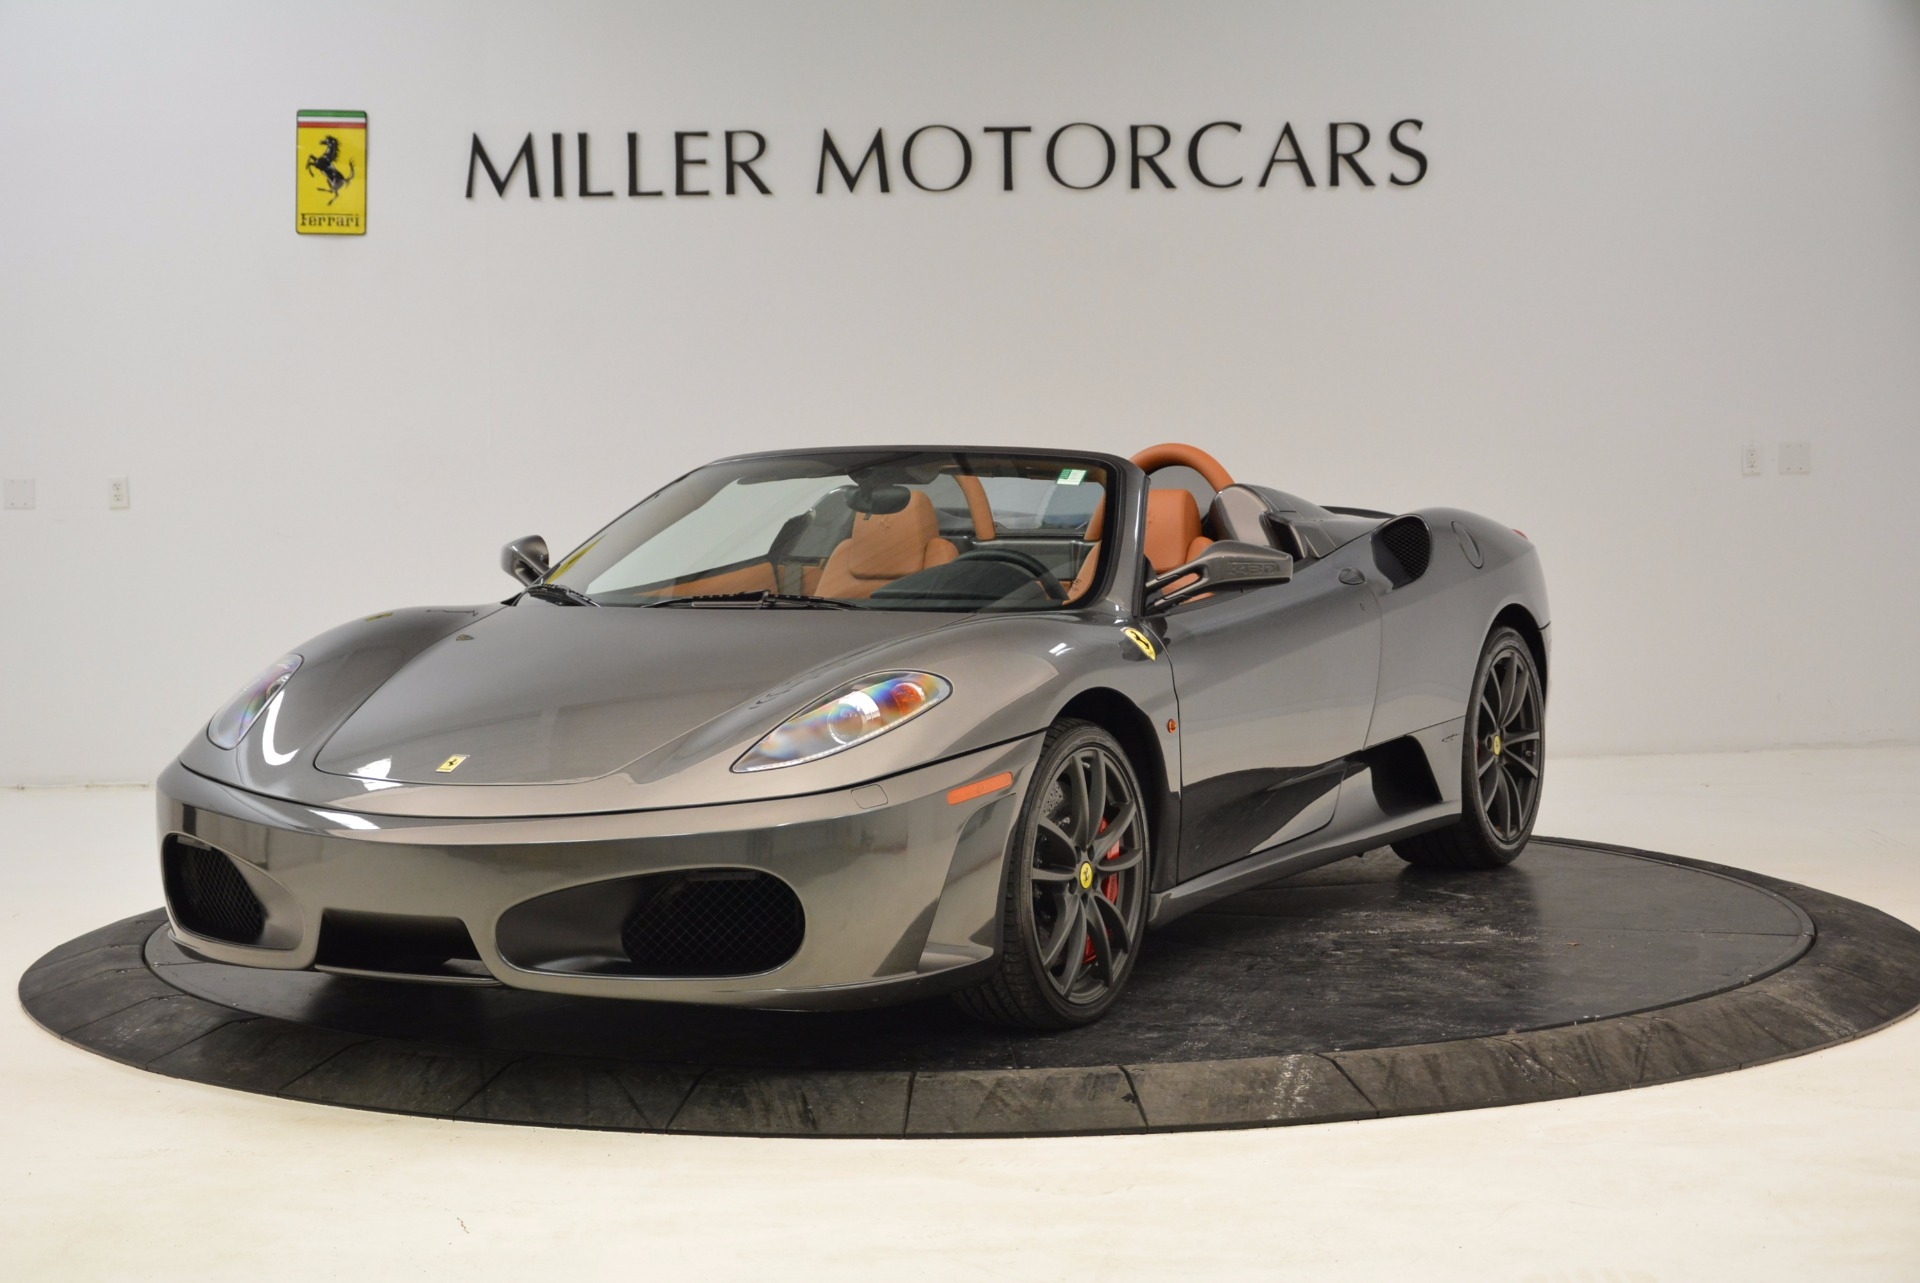 Used 2008 Ferrari F430 Spider for sale Sold at Alfa Romeo of Westport in Westport CT 06880 1